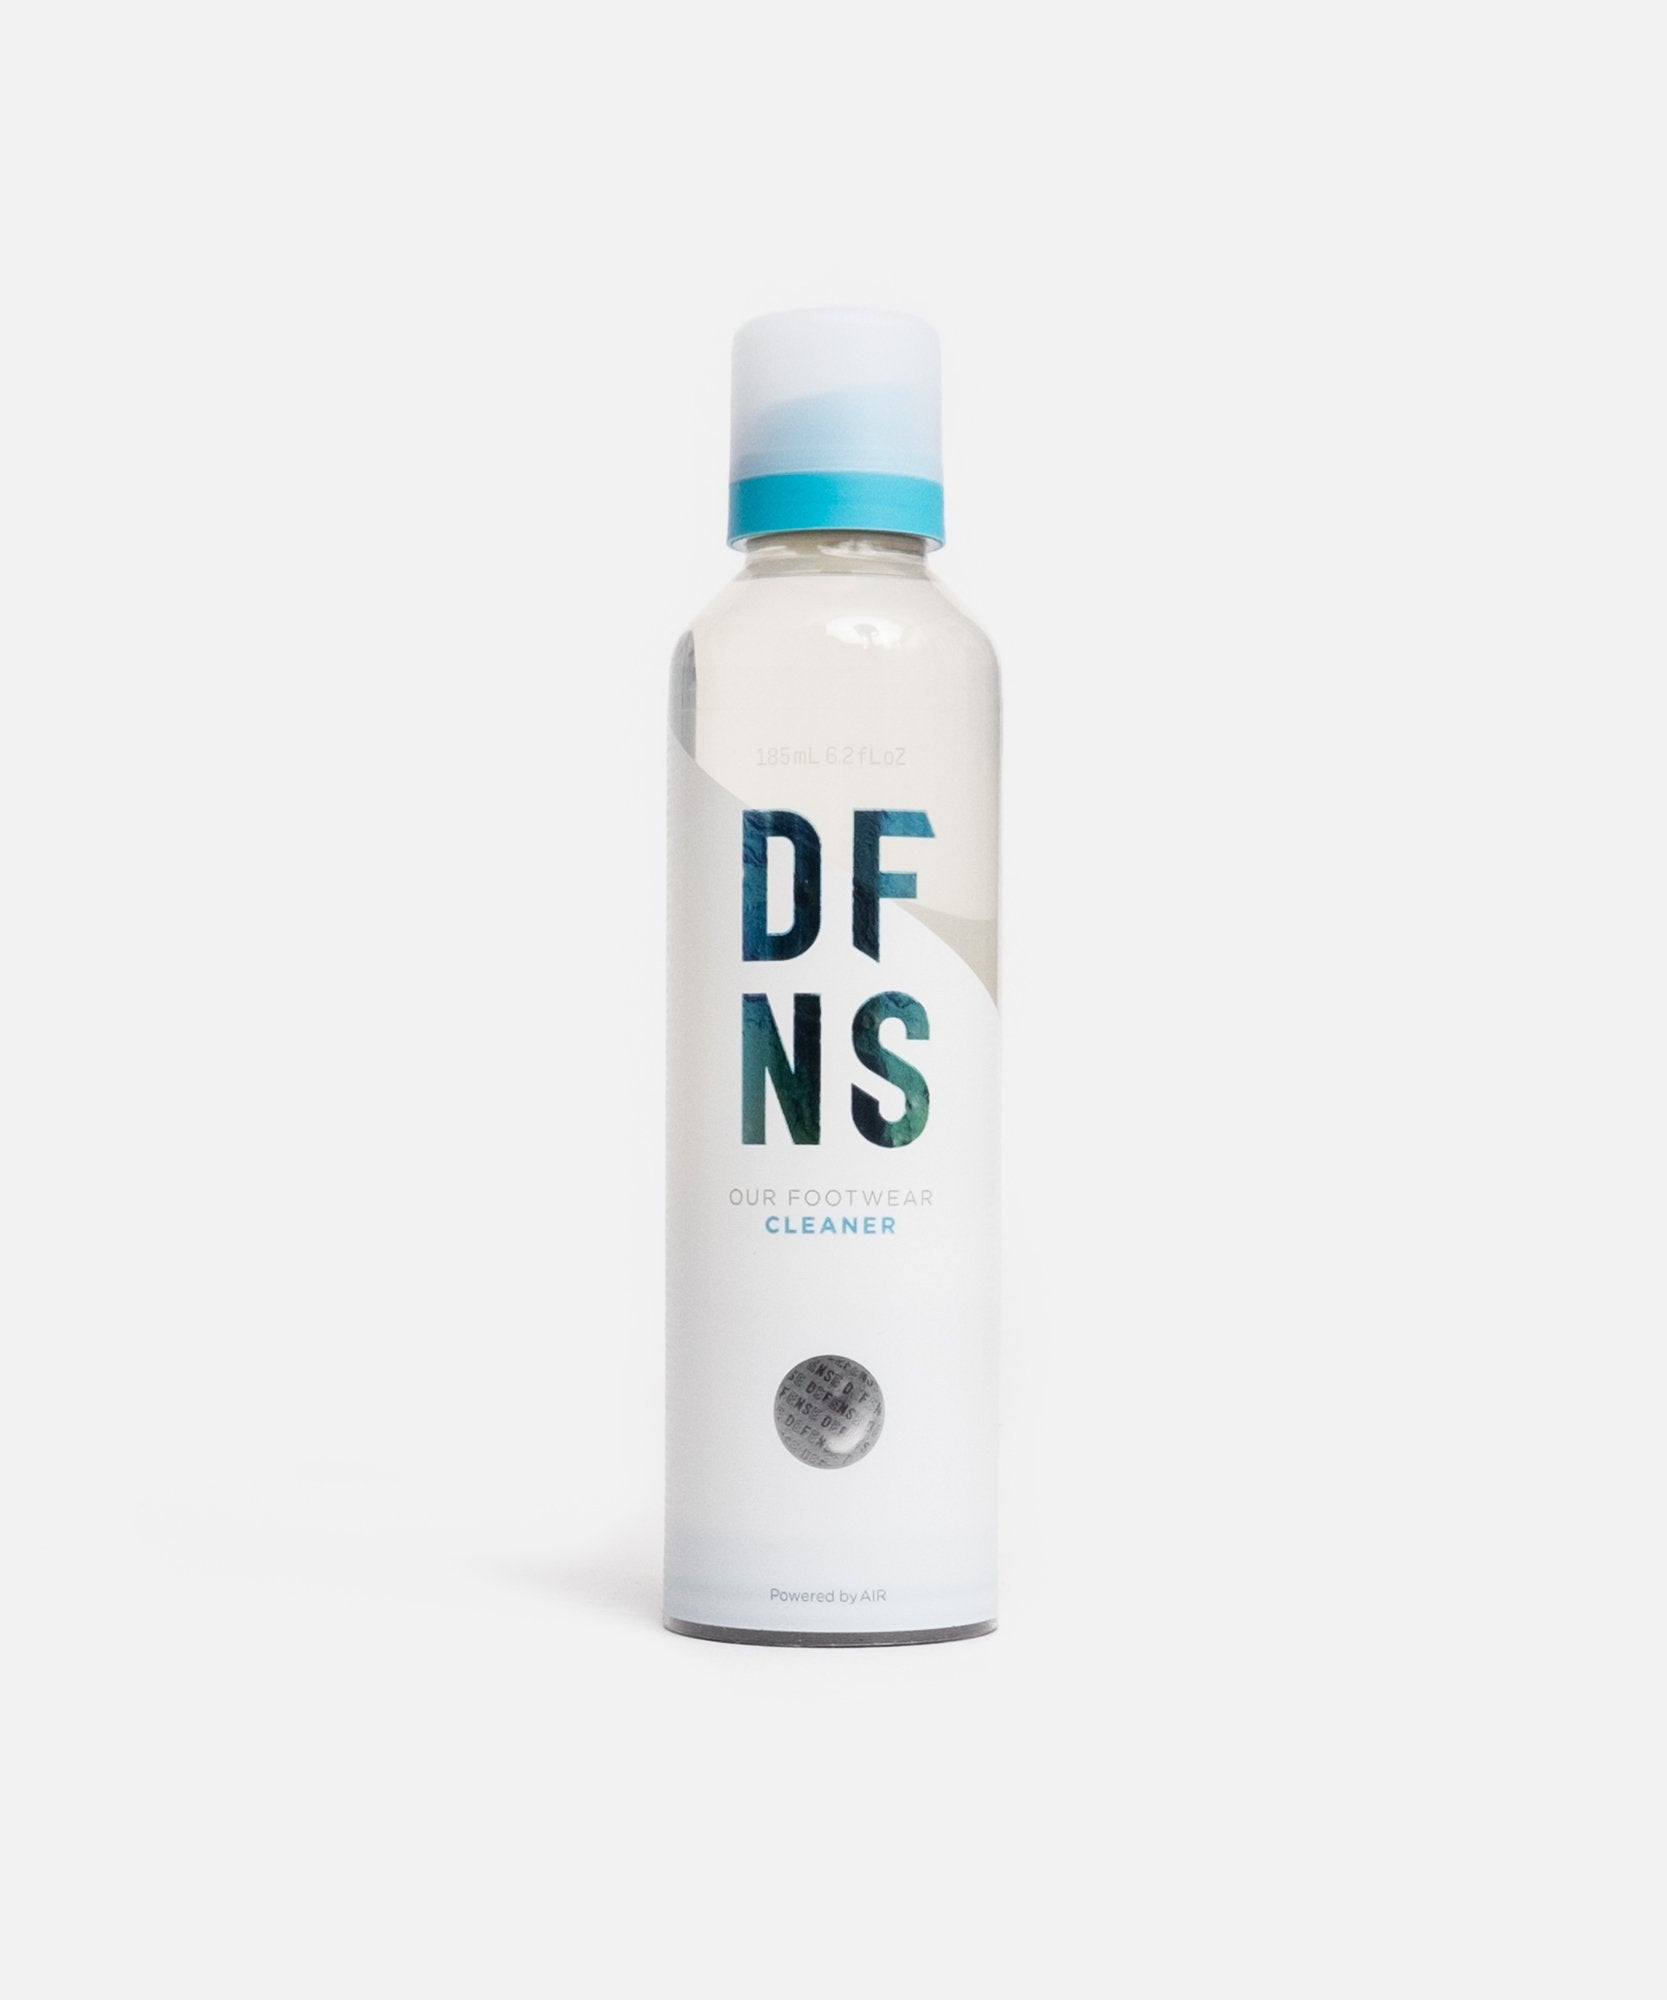 DFNS Footwear Cleaner 185ml